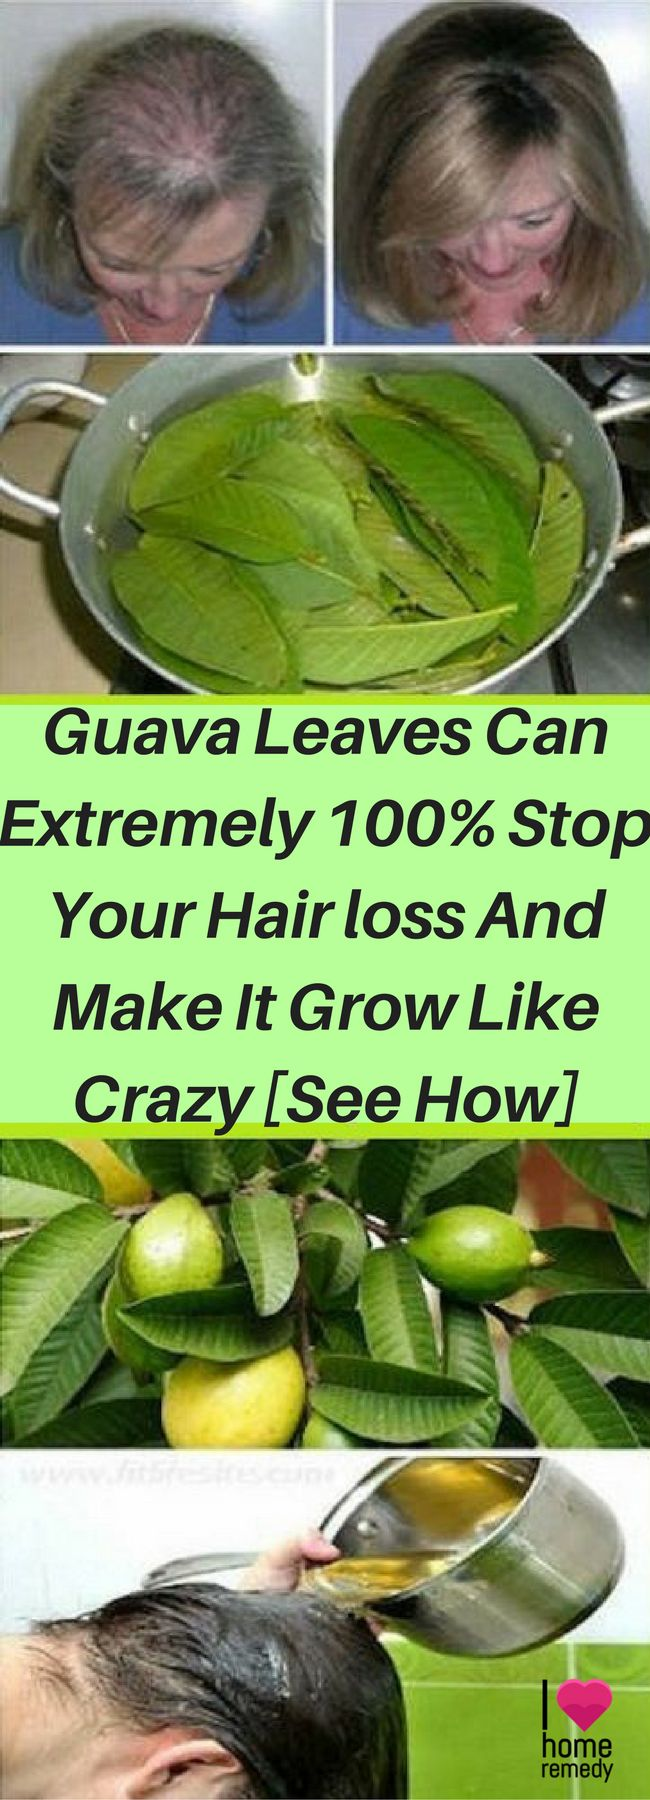 Guava Leaves Can Extremely 100% Stop Your Hair loss And Make It Grow Like Crazy [See How]